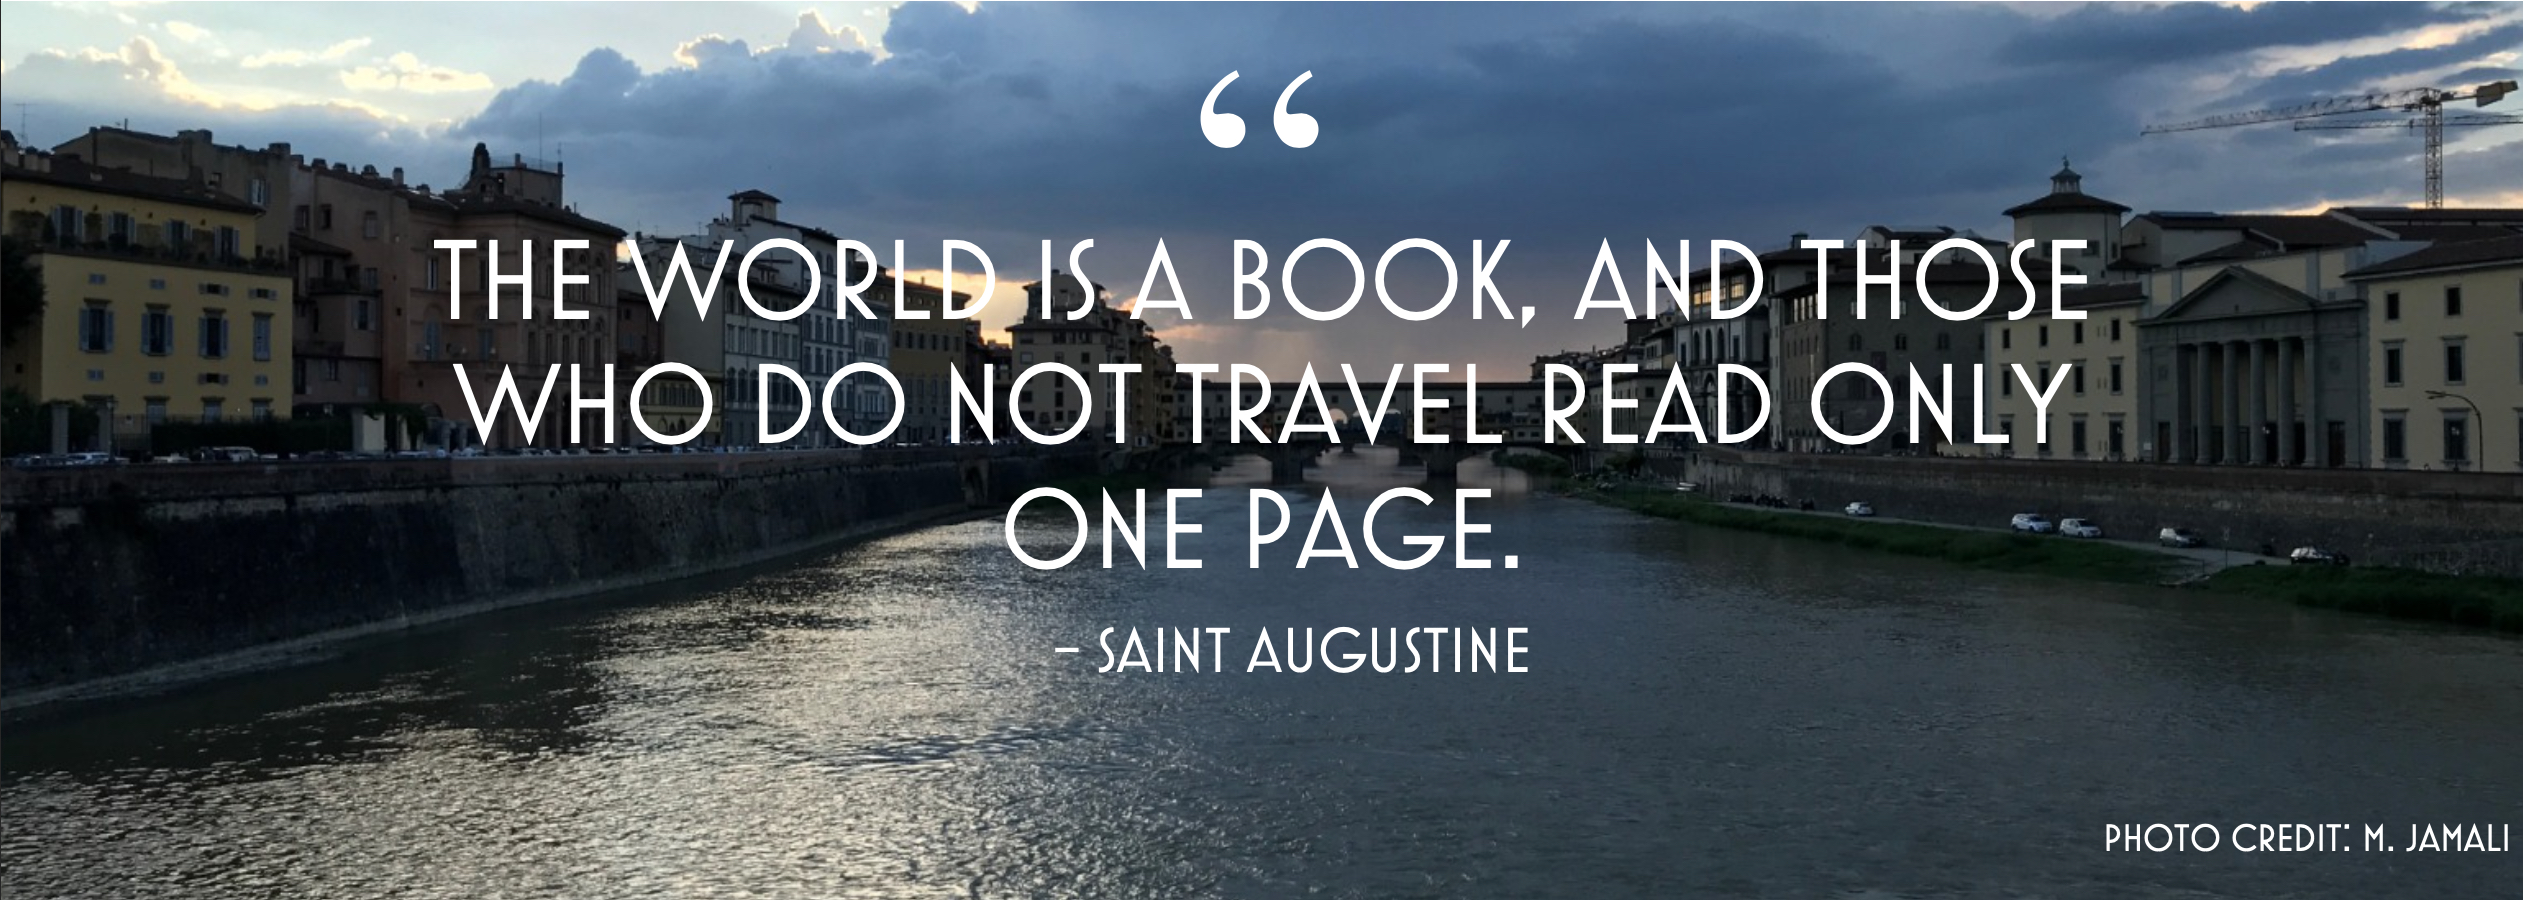 The world is a book, and those who do not travel read only one page. Photo credit M Jamali; Design by G. Lisena